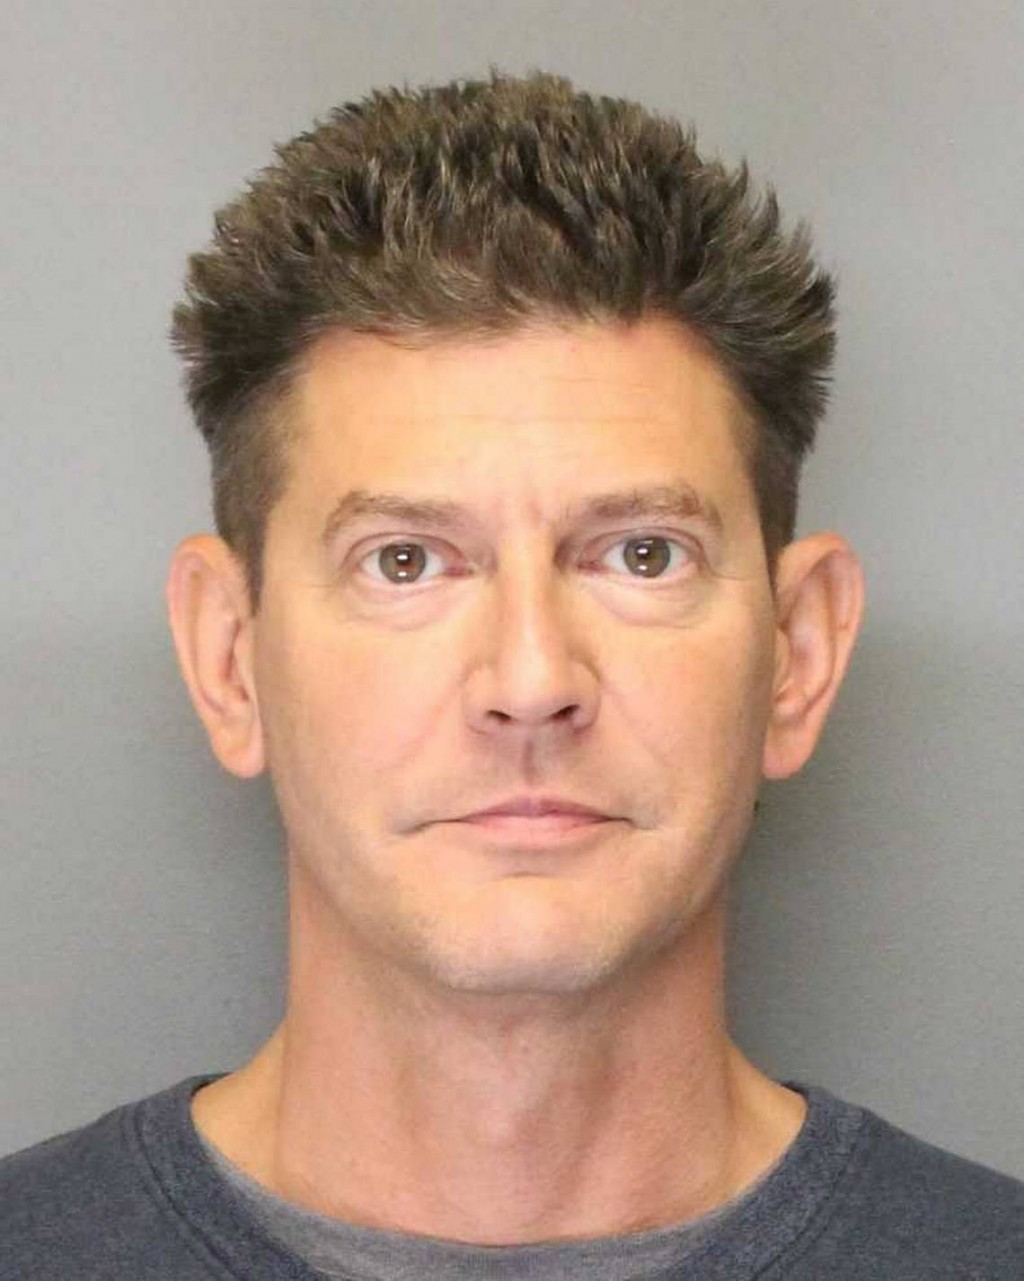 This 2018 booking photo released by the Yolo County Sheriff's Office shows Kevin Douglas Limbaugh. Authorities identified the 48-year-old Limbaugh as